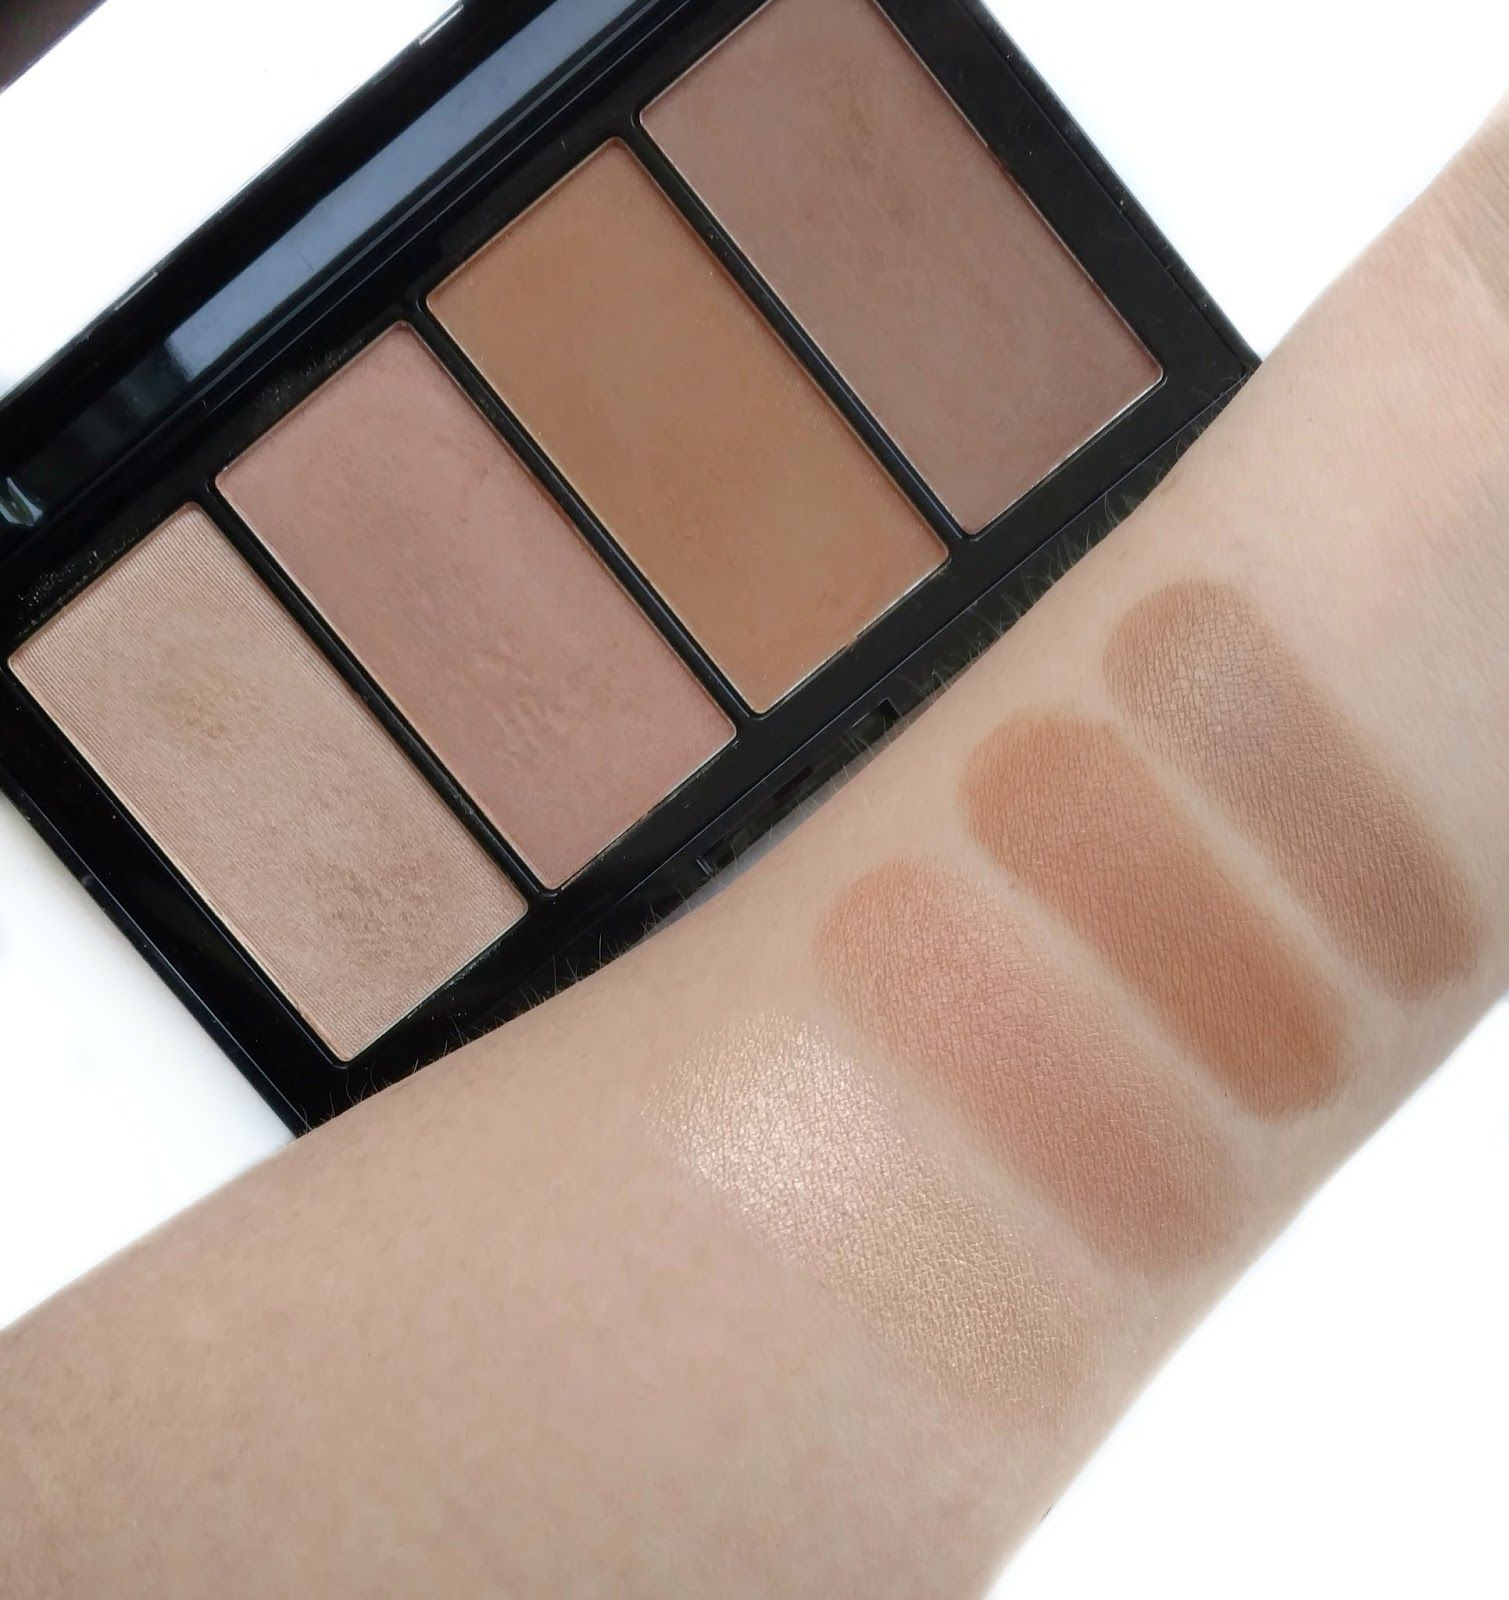 Maybelline Master Bronze Palette Swatches Cool tone